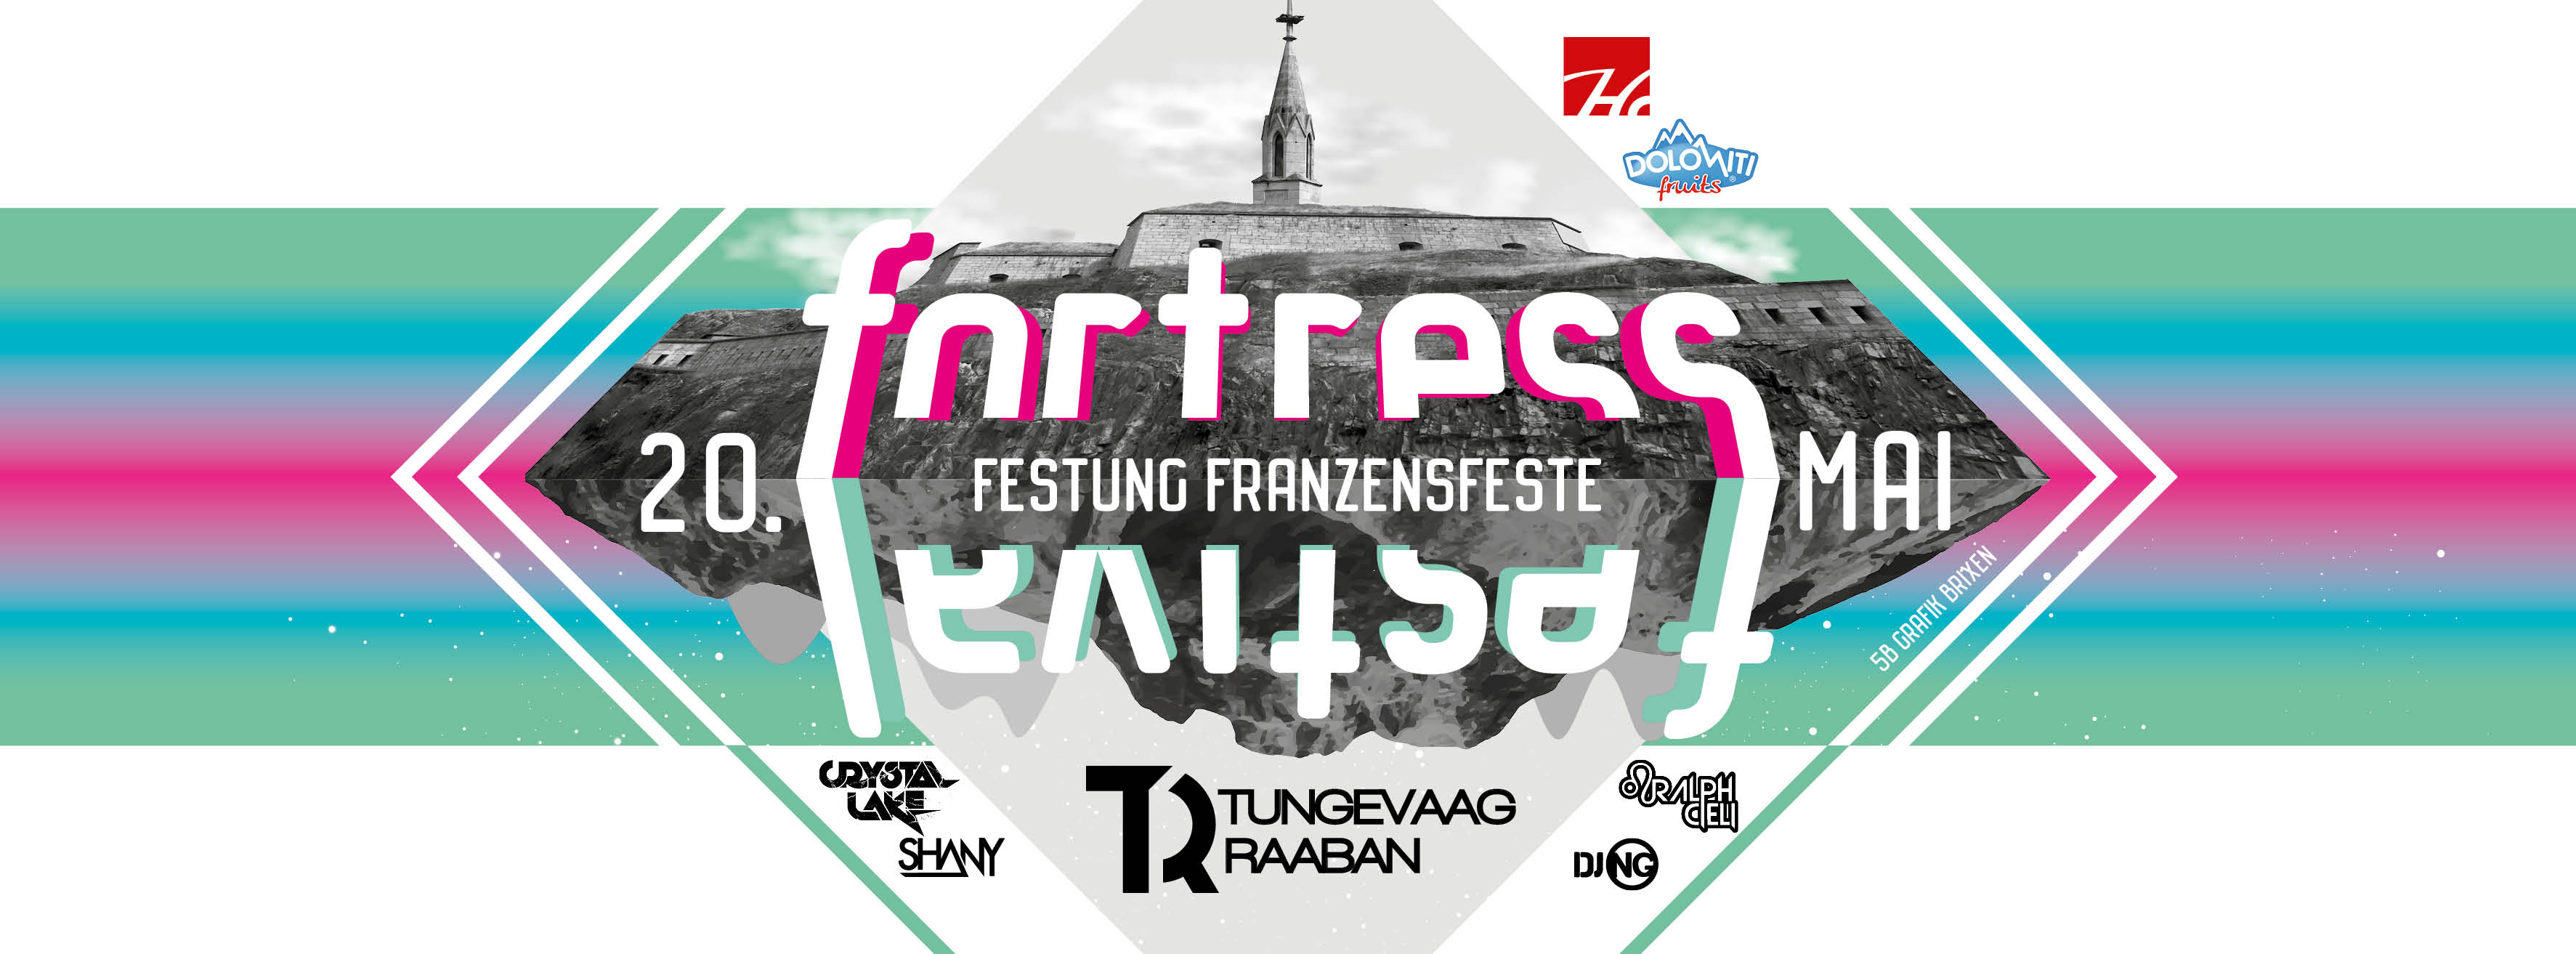 The Fortress Festival